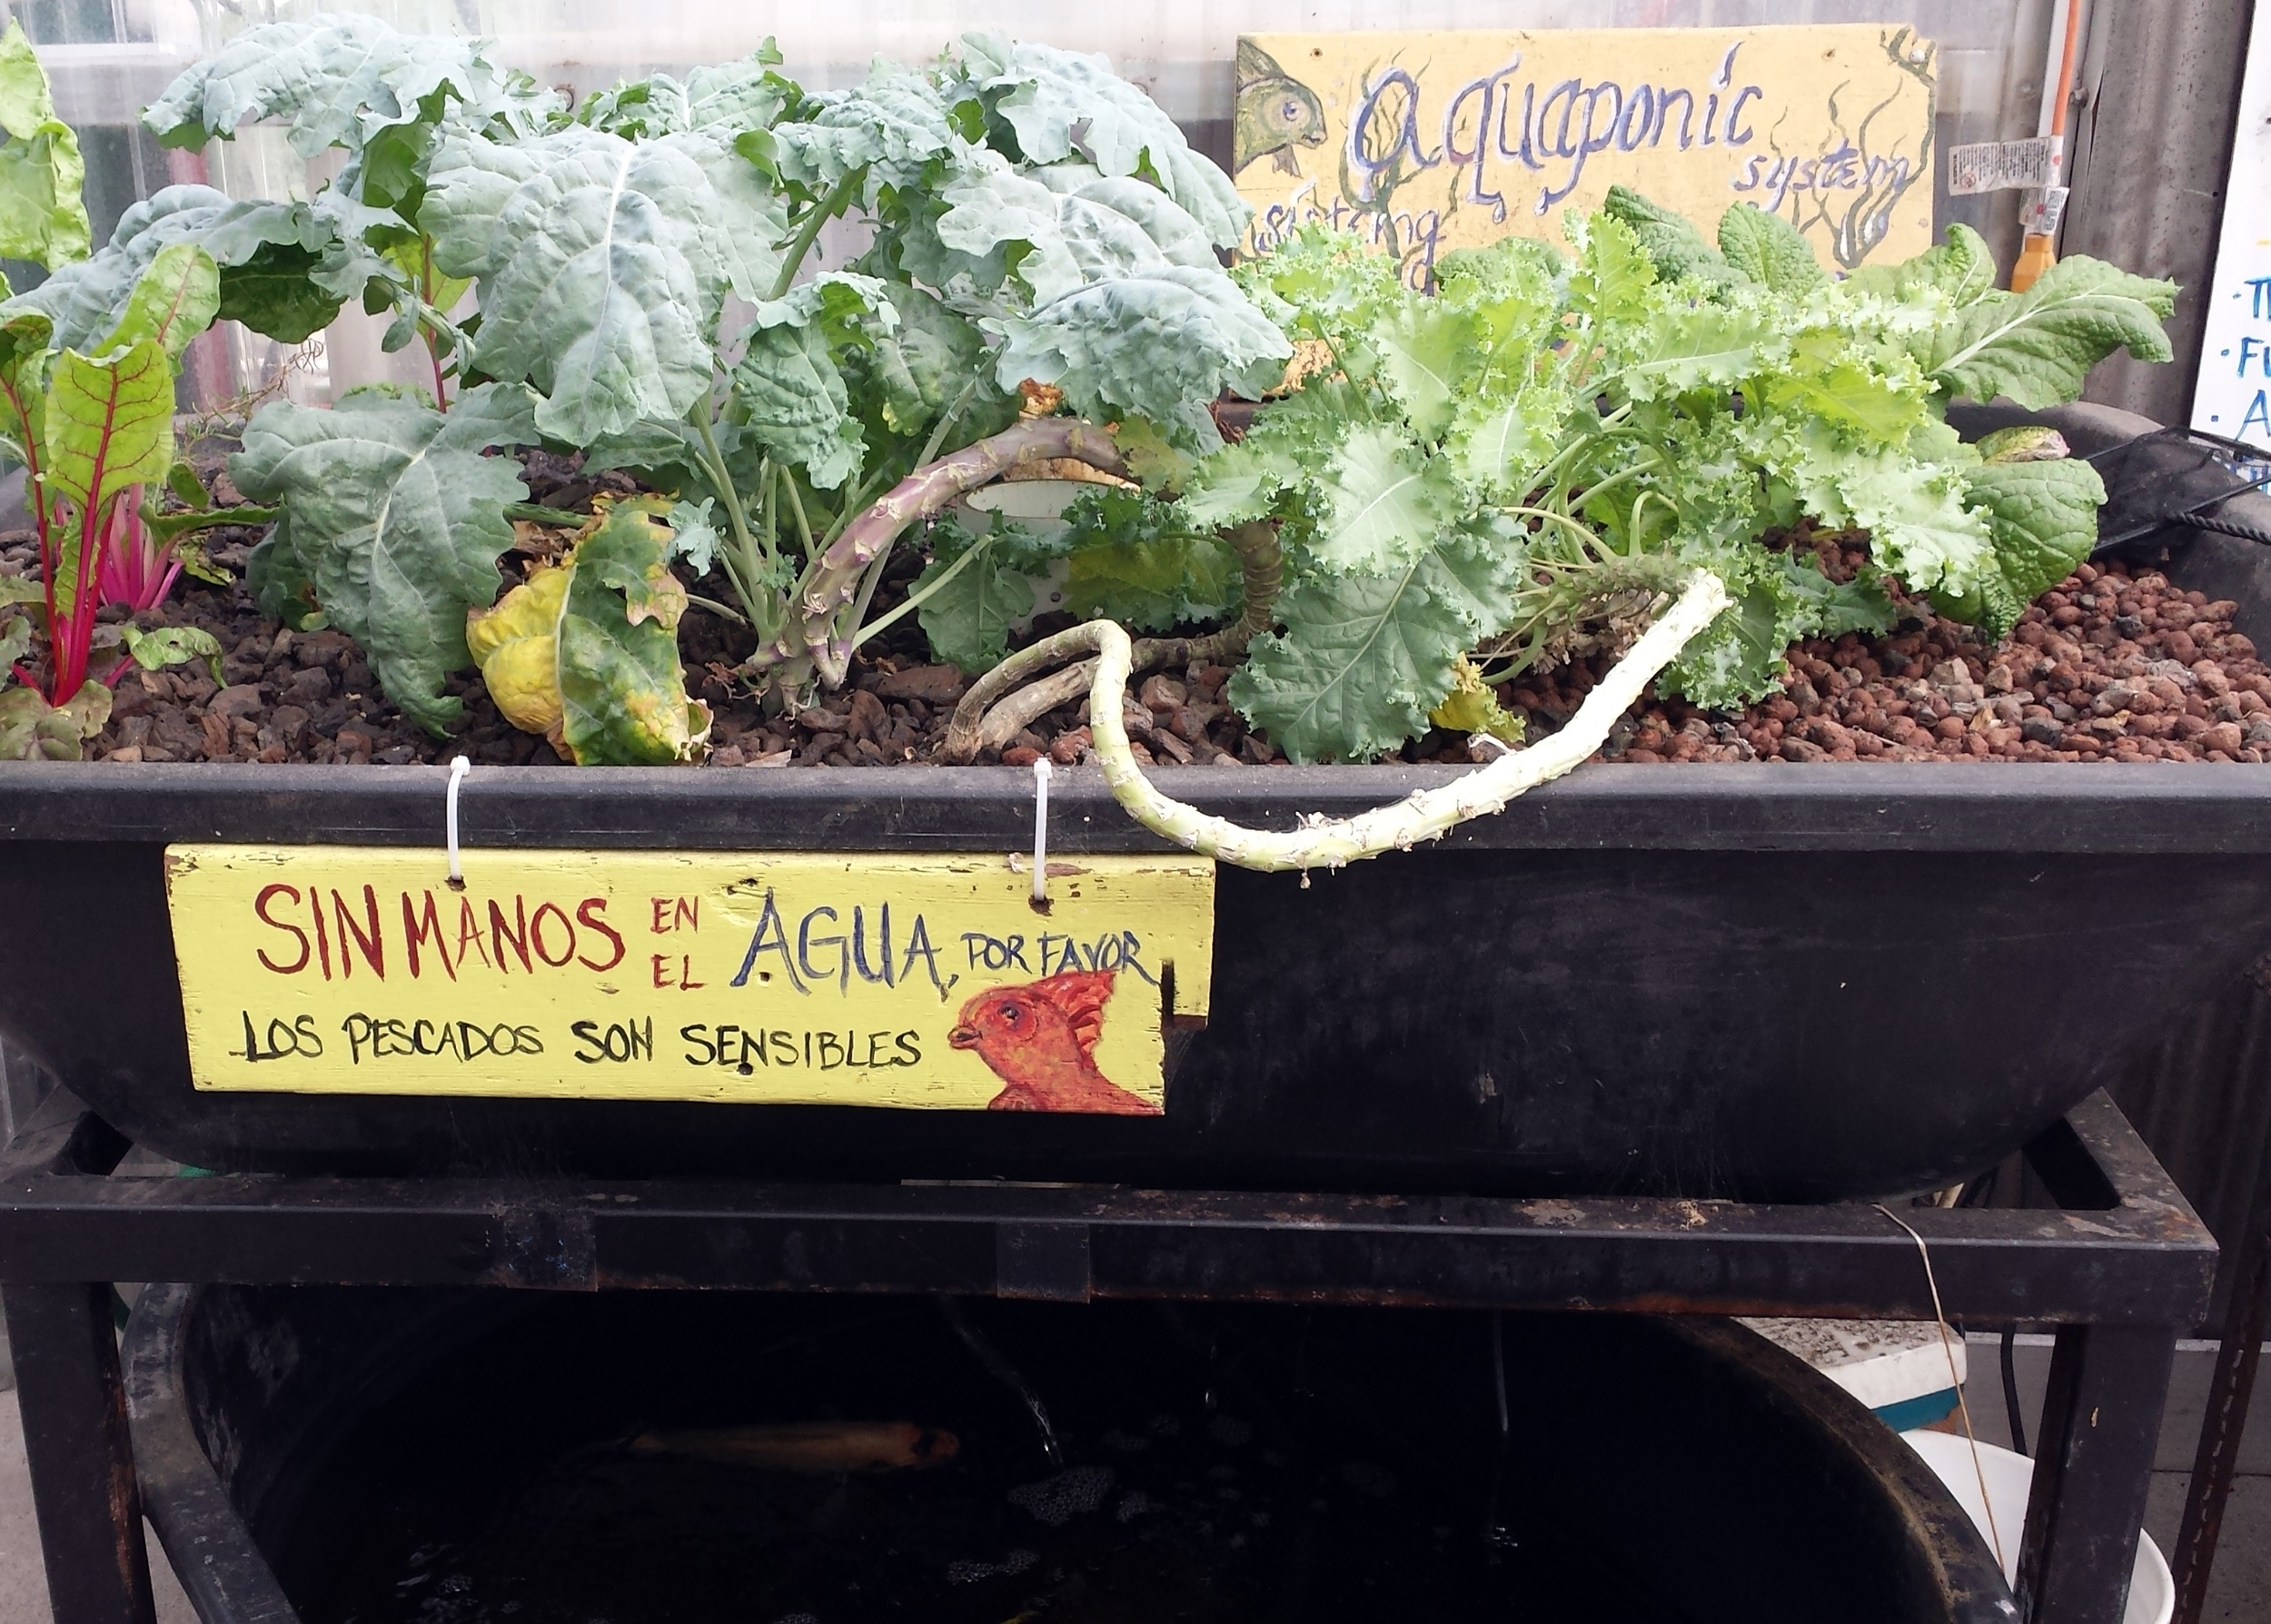 A small demonstration of aquaponic farming: a closed system with fish and plants.